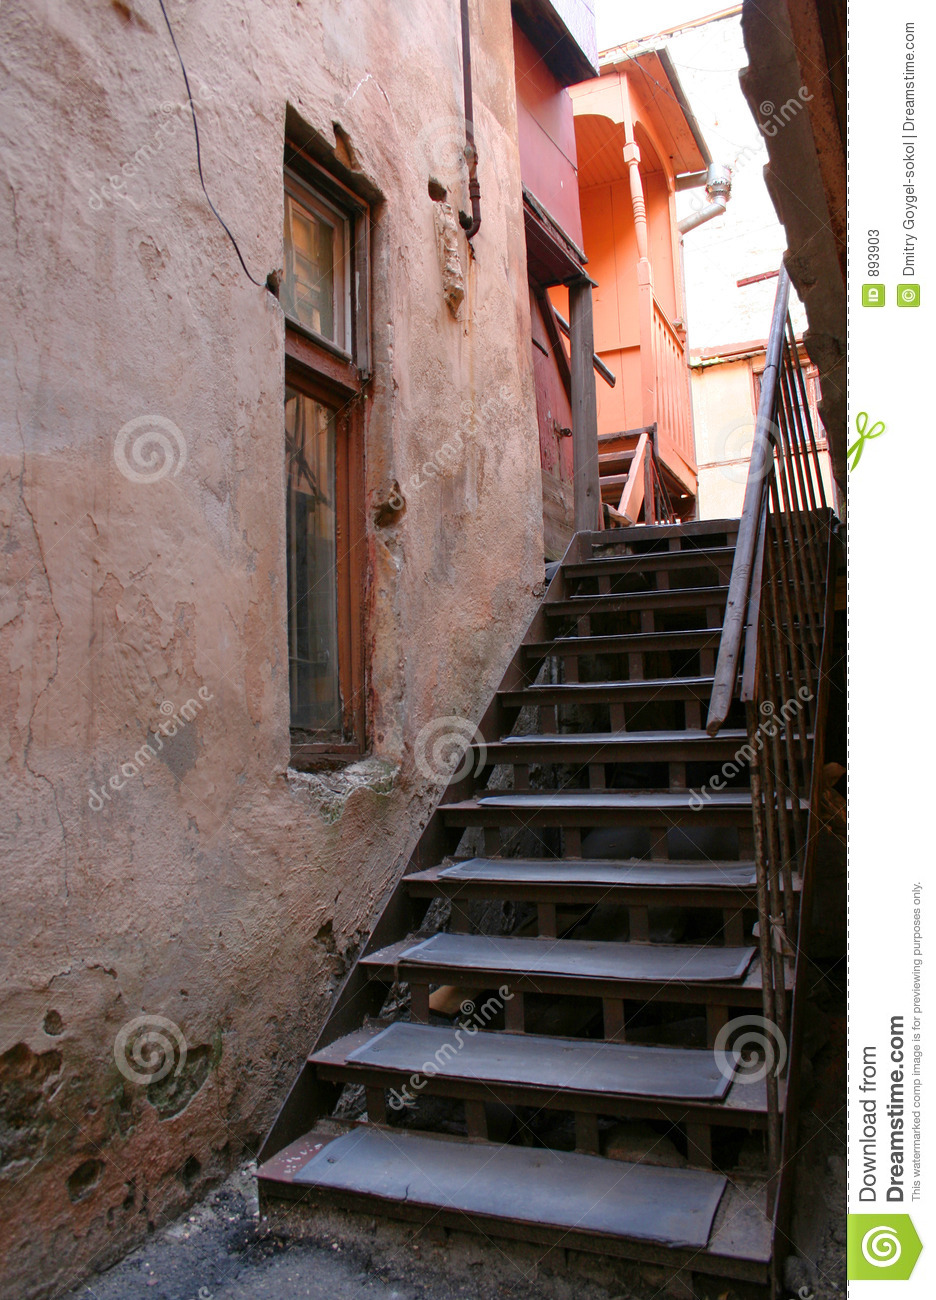 Stairs of old city